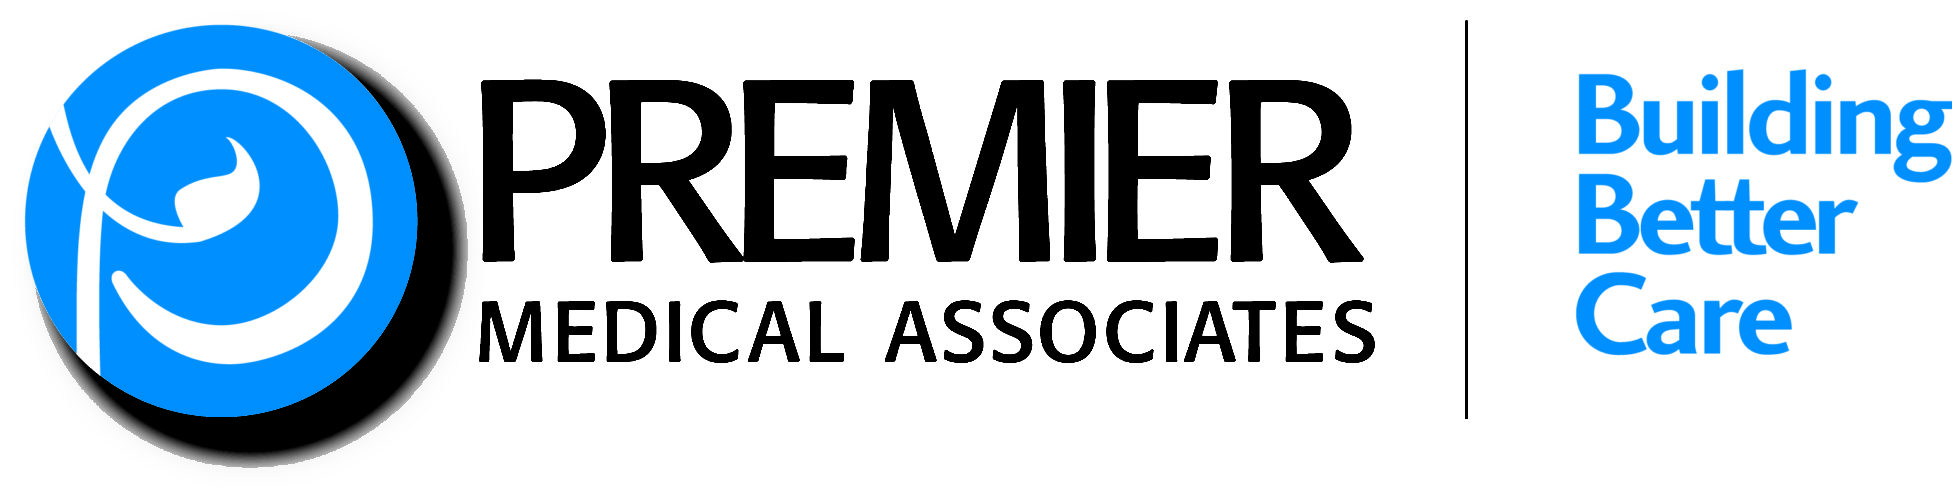 Premier Medical logo BBC_logo